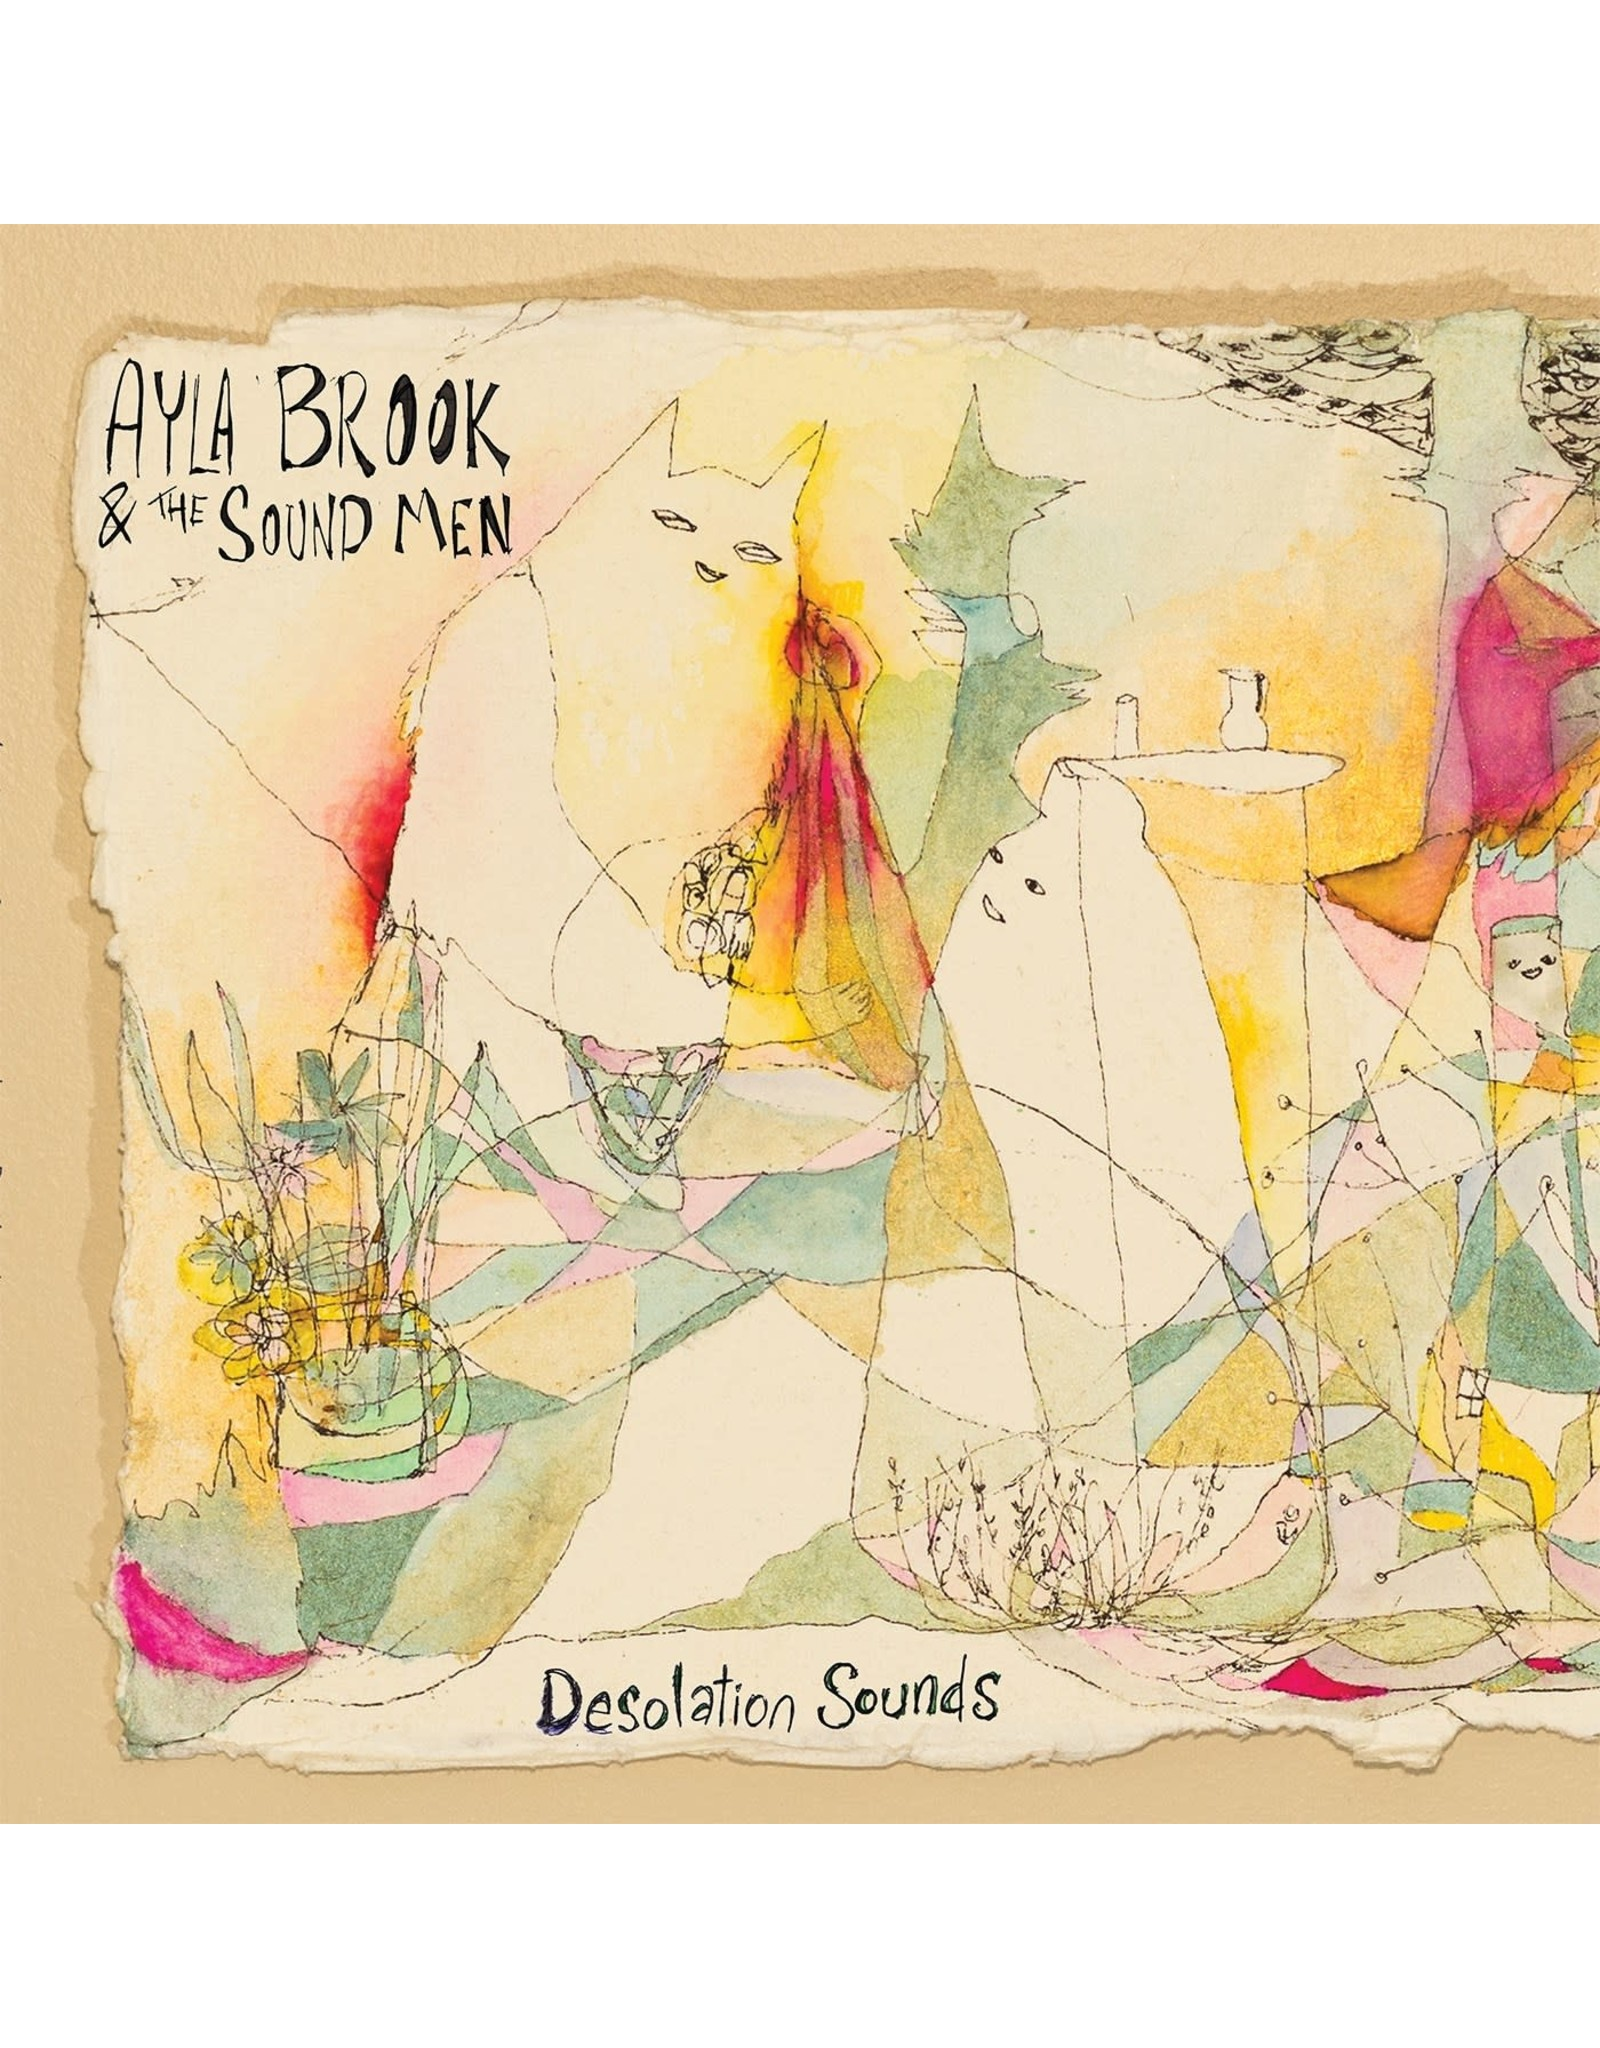 Brook, Ayla & the Sound Men - Desolation Sounds LP